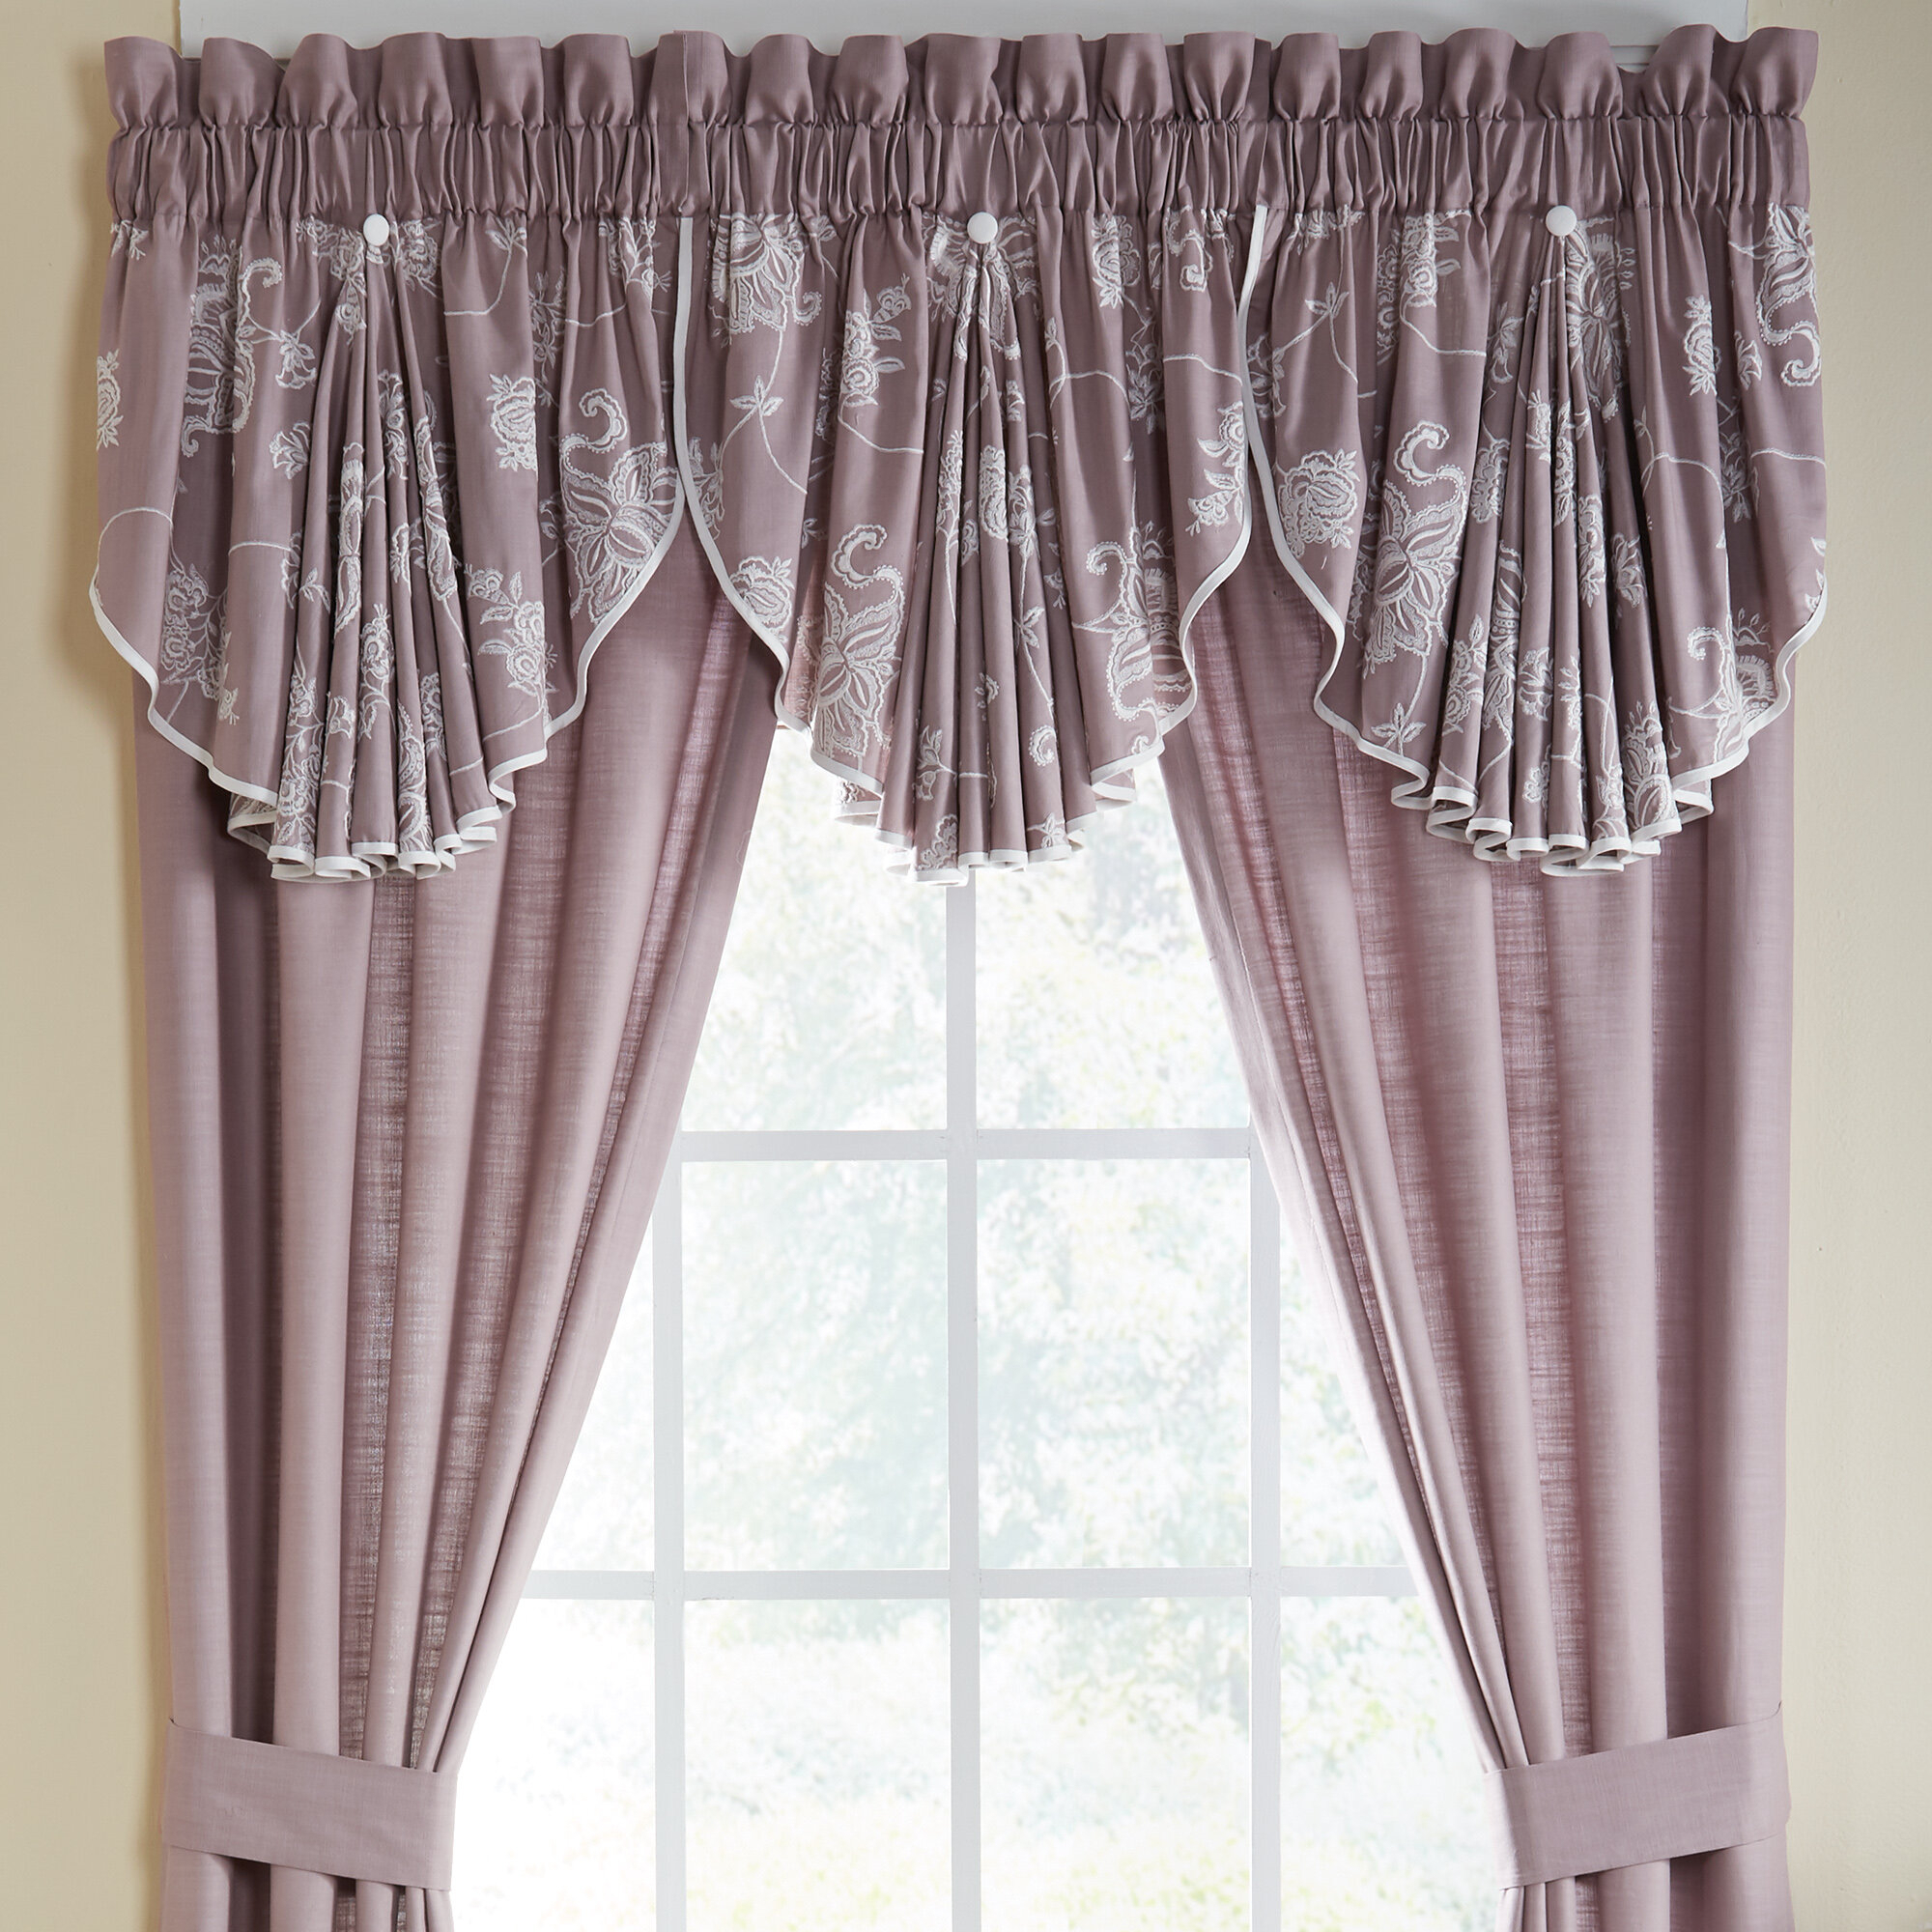 "Liliana Circle 42"" Window Valance In Circle Curtain Valances (View 10 of 20)"